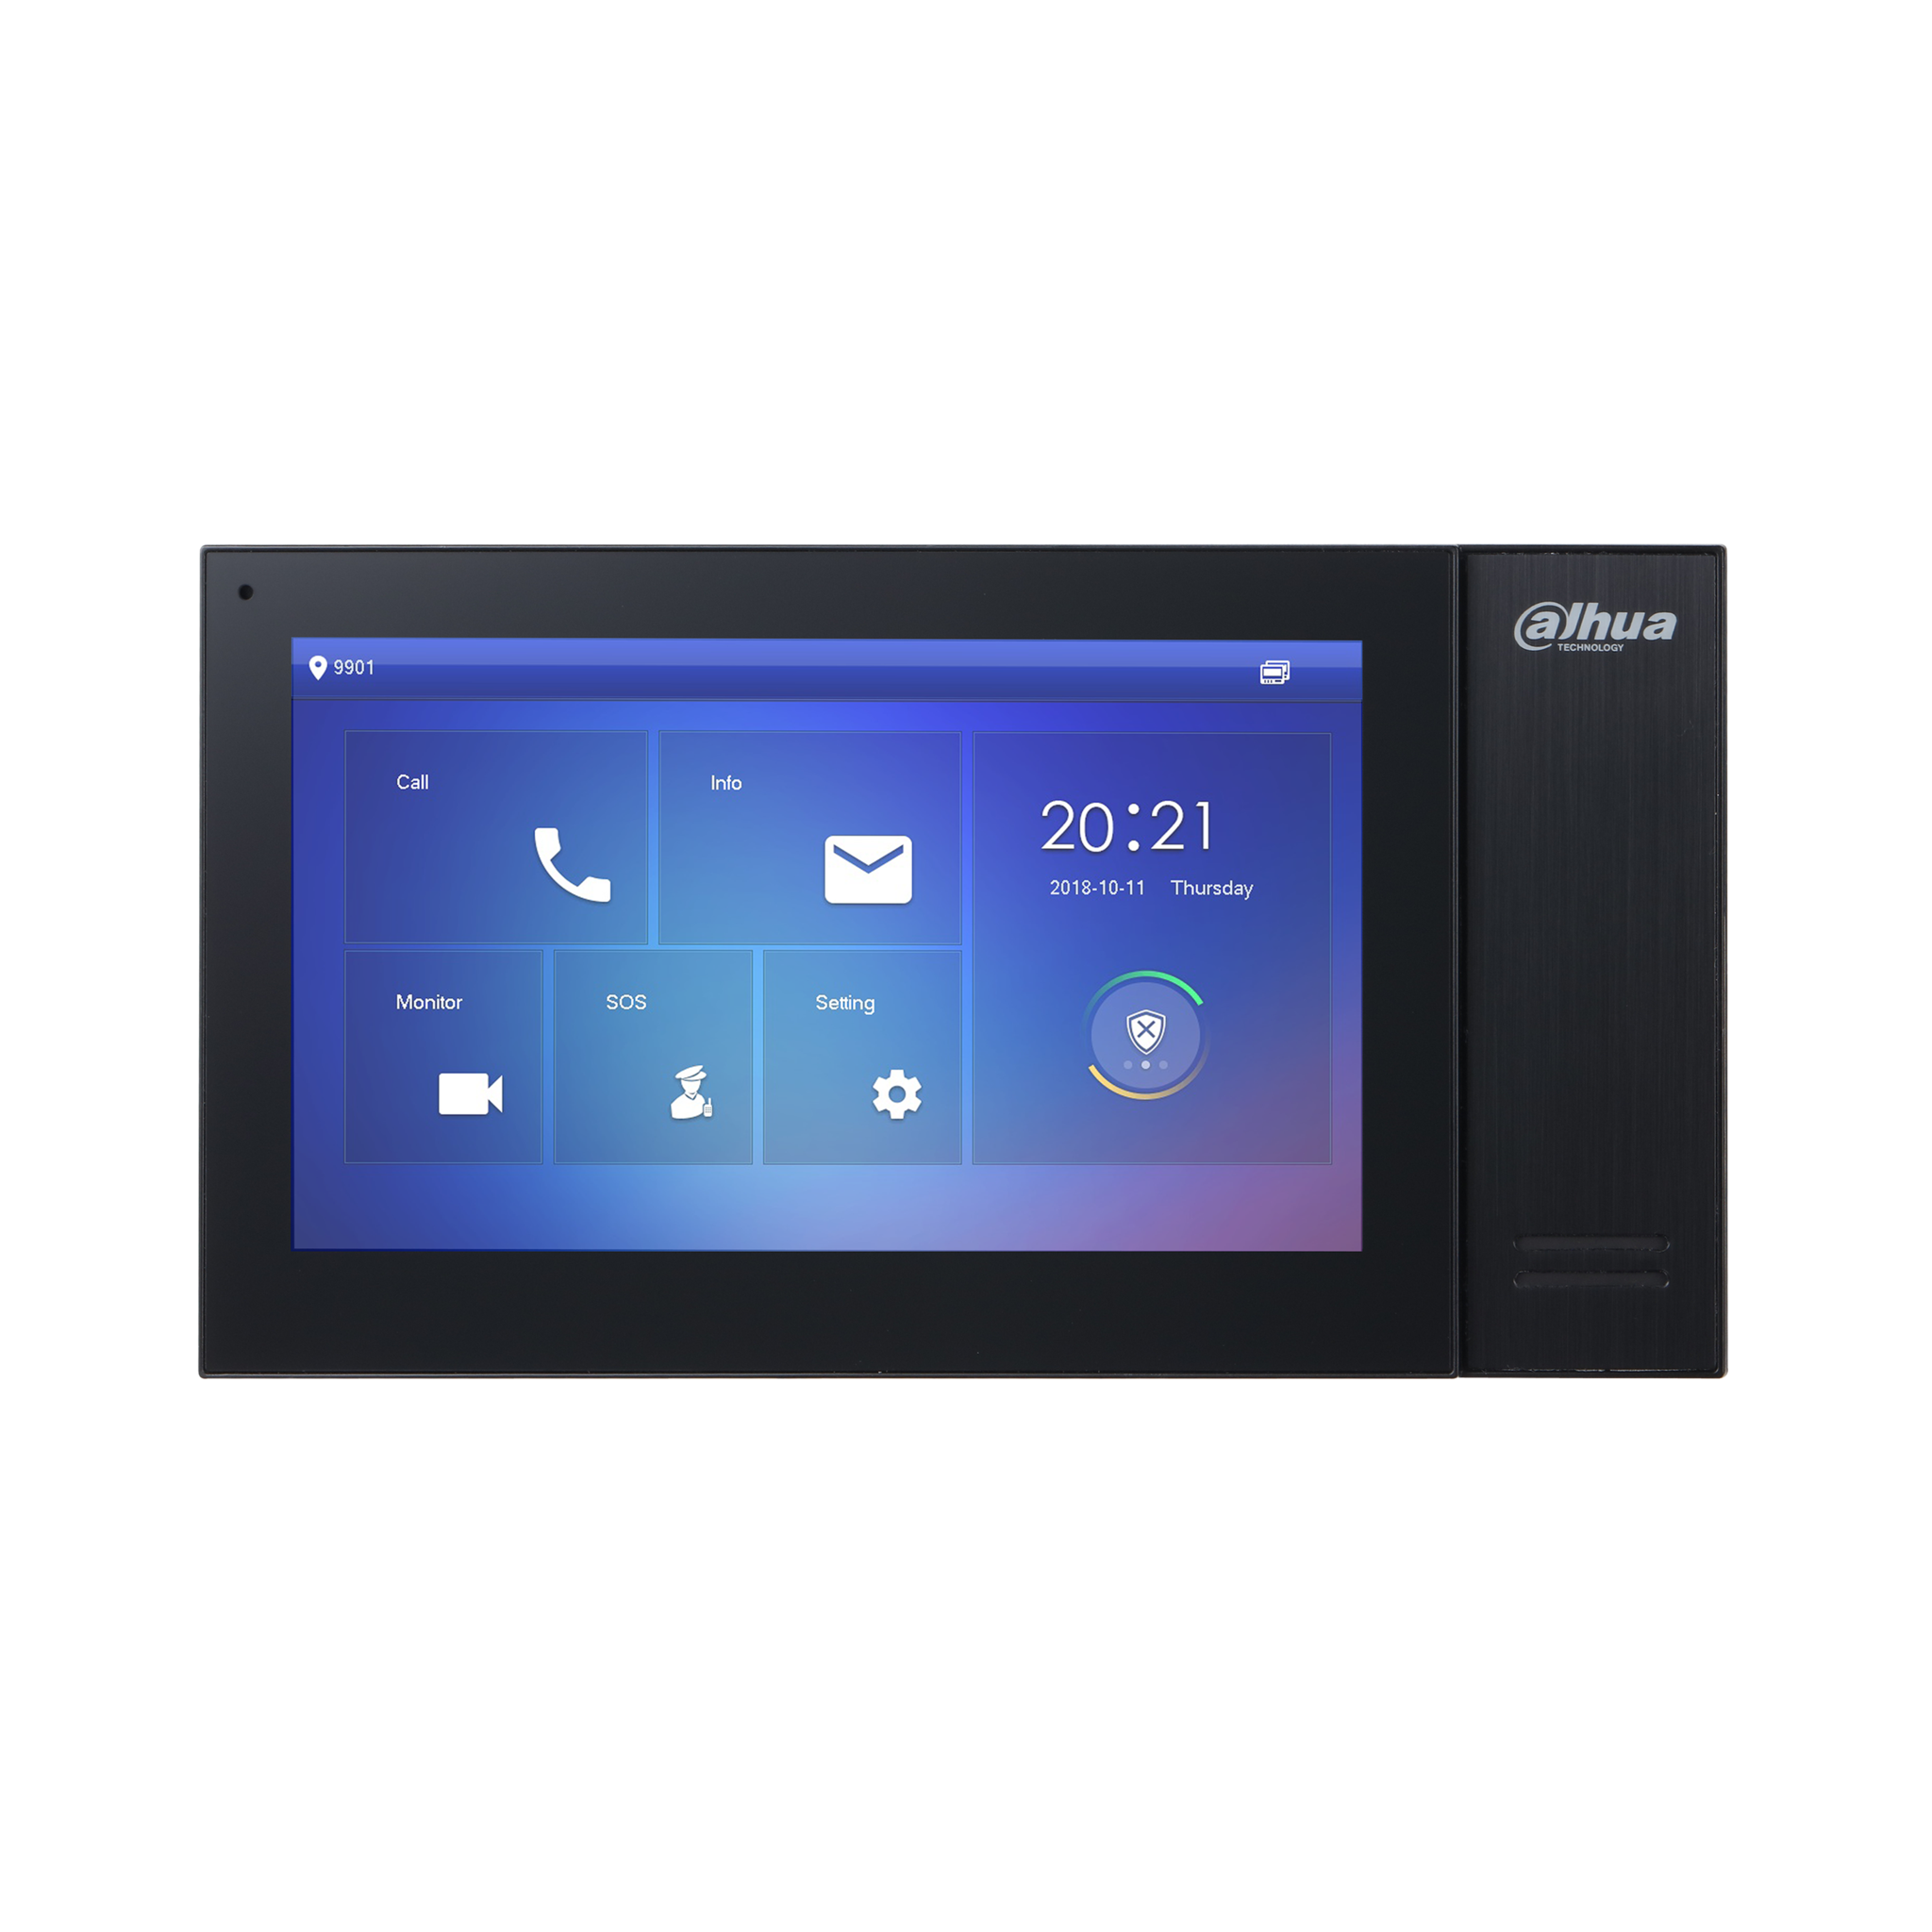 Dahua DHI-VTH2421FB-P 7 Inch Touch Screen IP Indoor Monitor